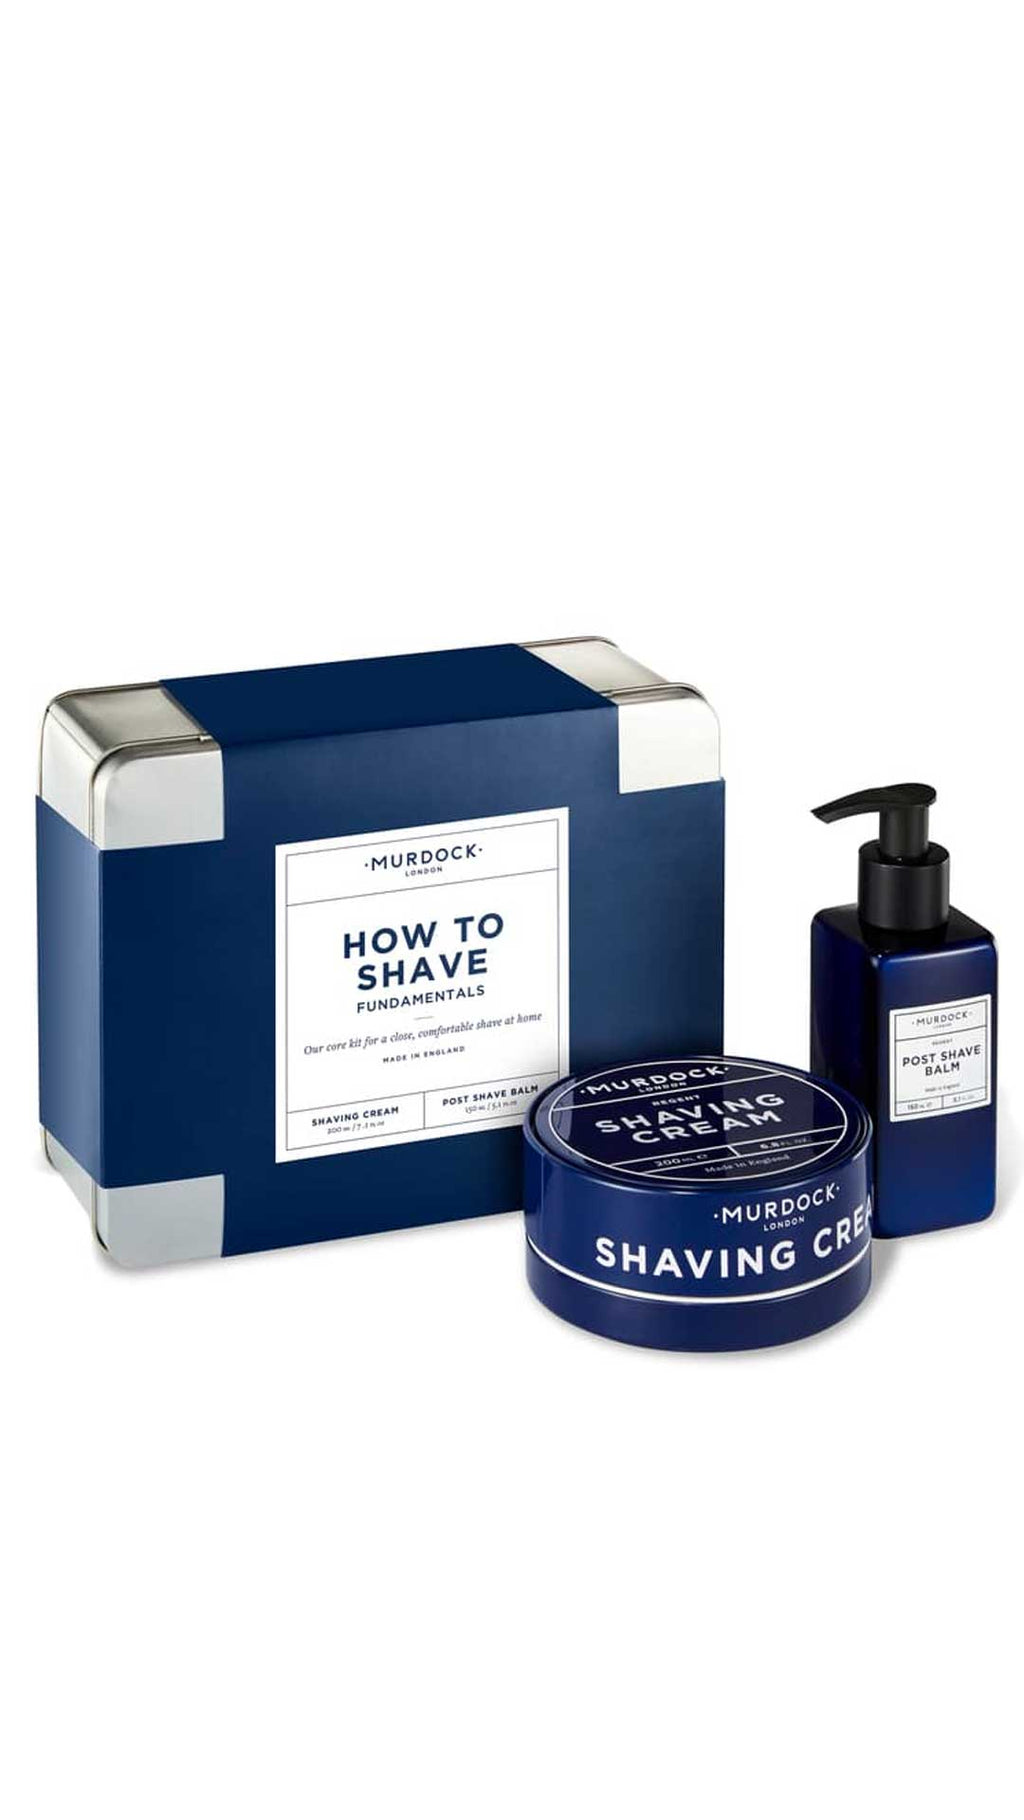 COFFRET HOW TO SHAVE - MURDOCK OF LONDON